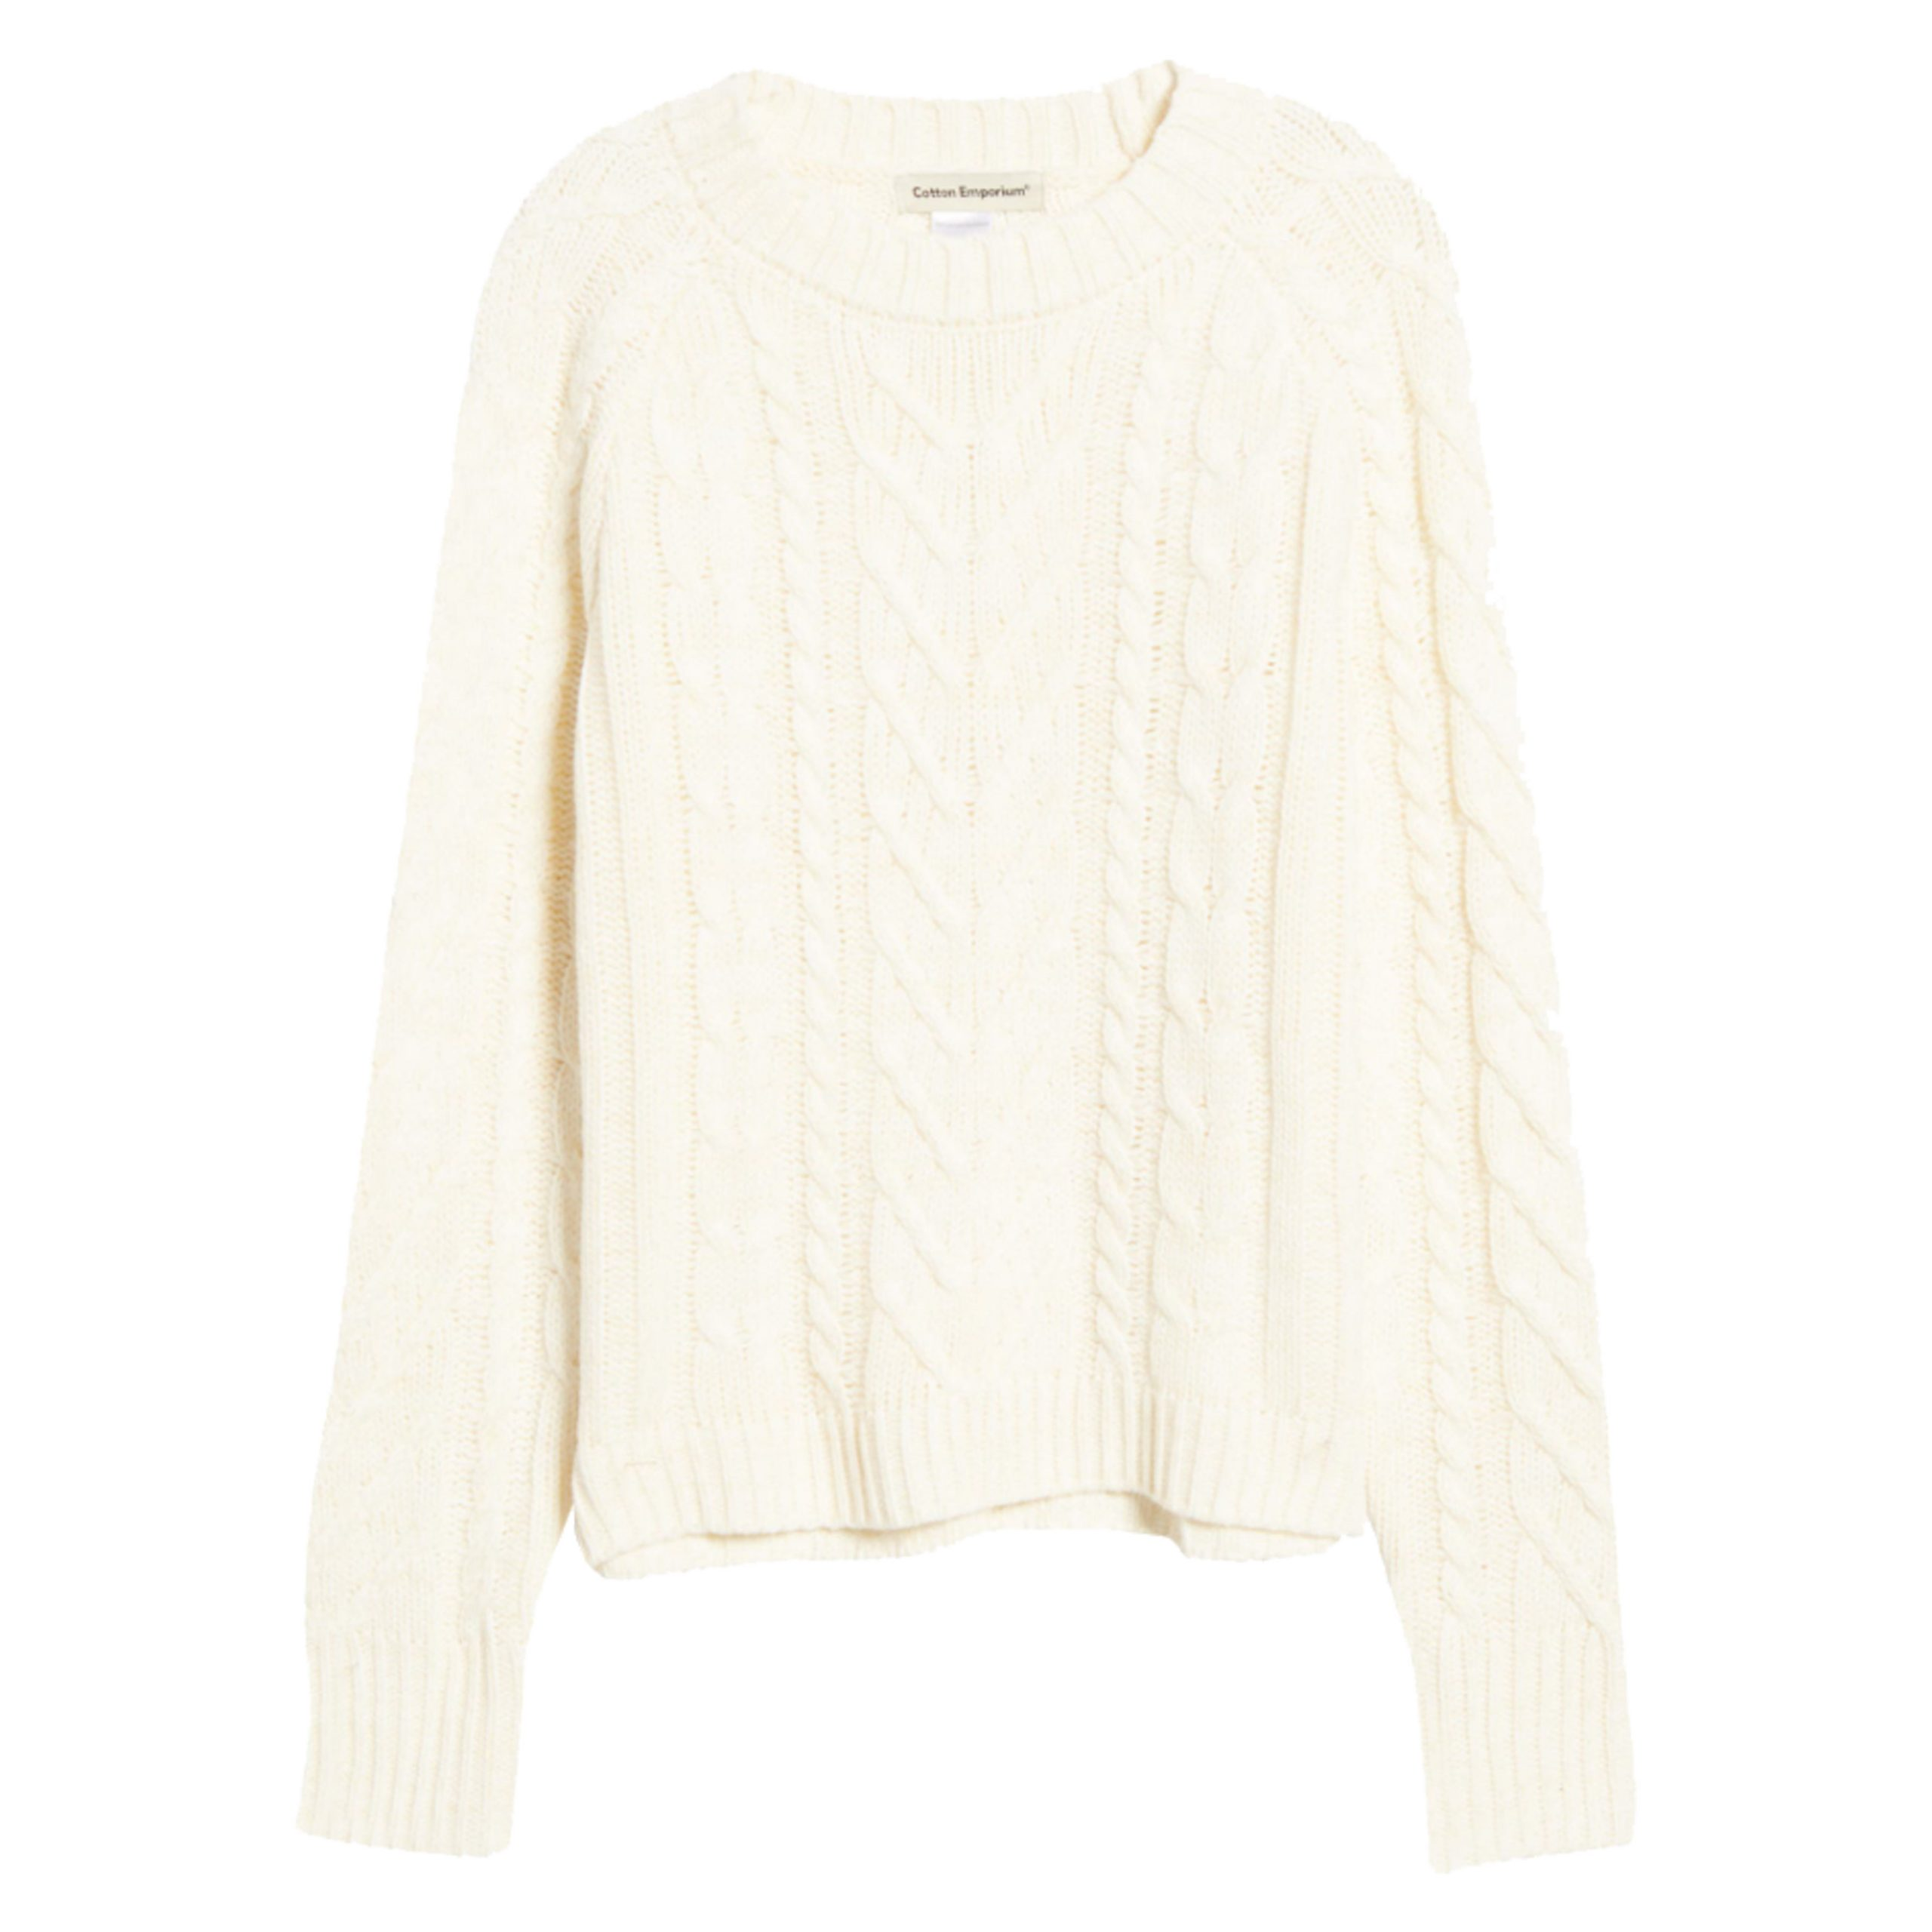 a classic cable knit sweater